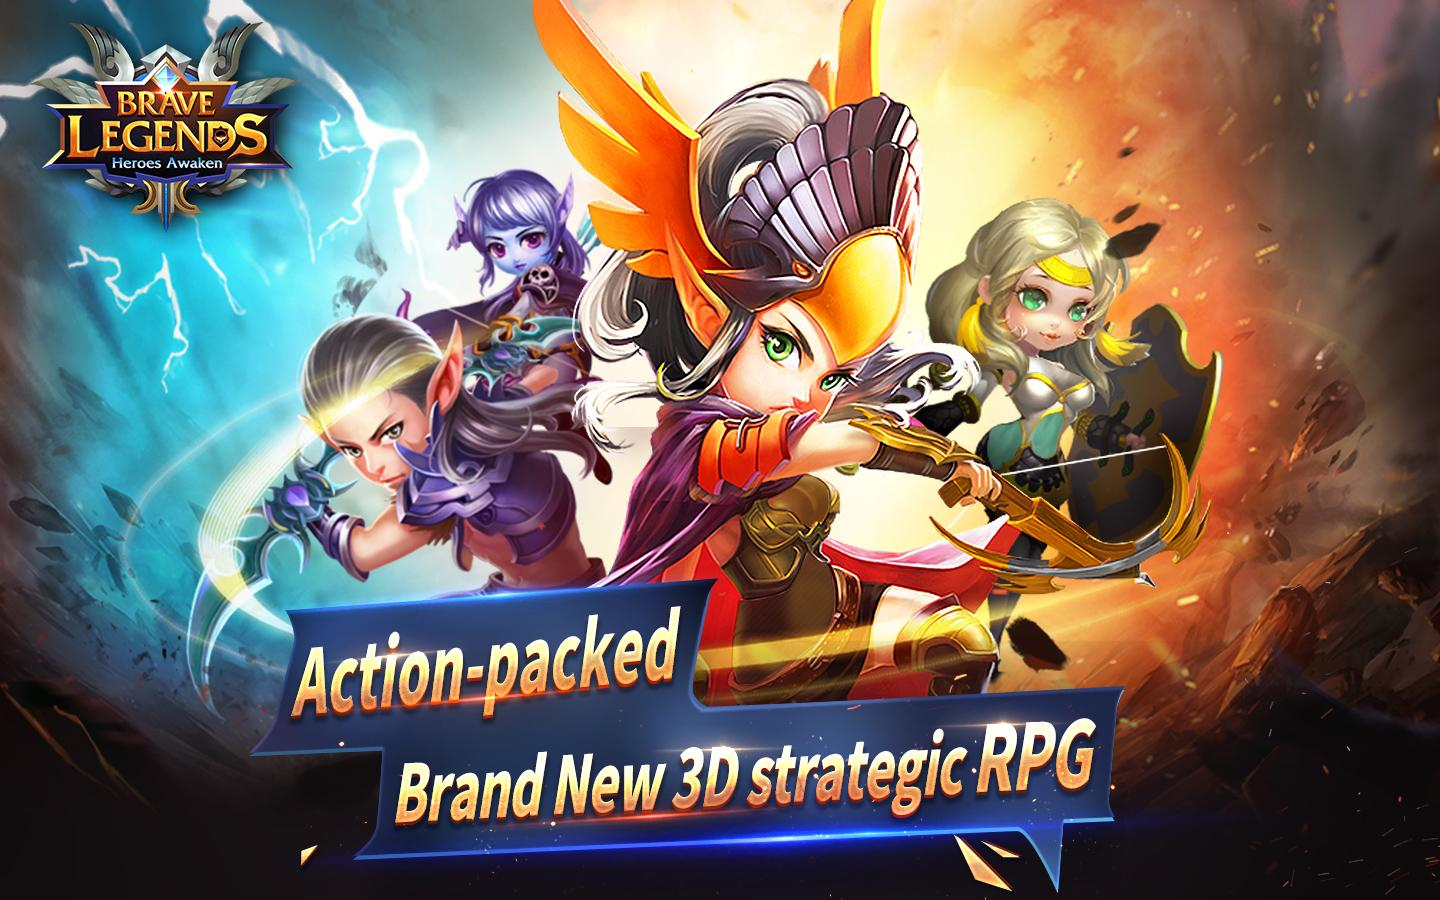 Brave Legends Heroes Awaken MOD APK